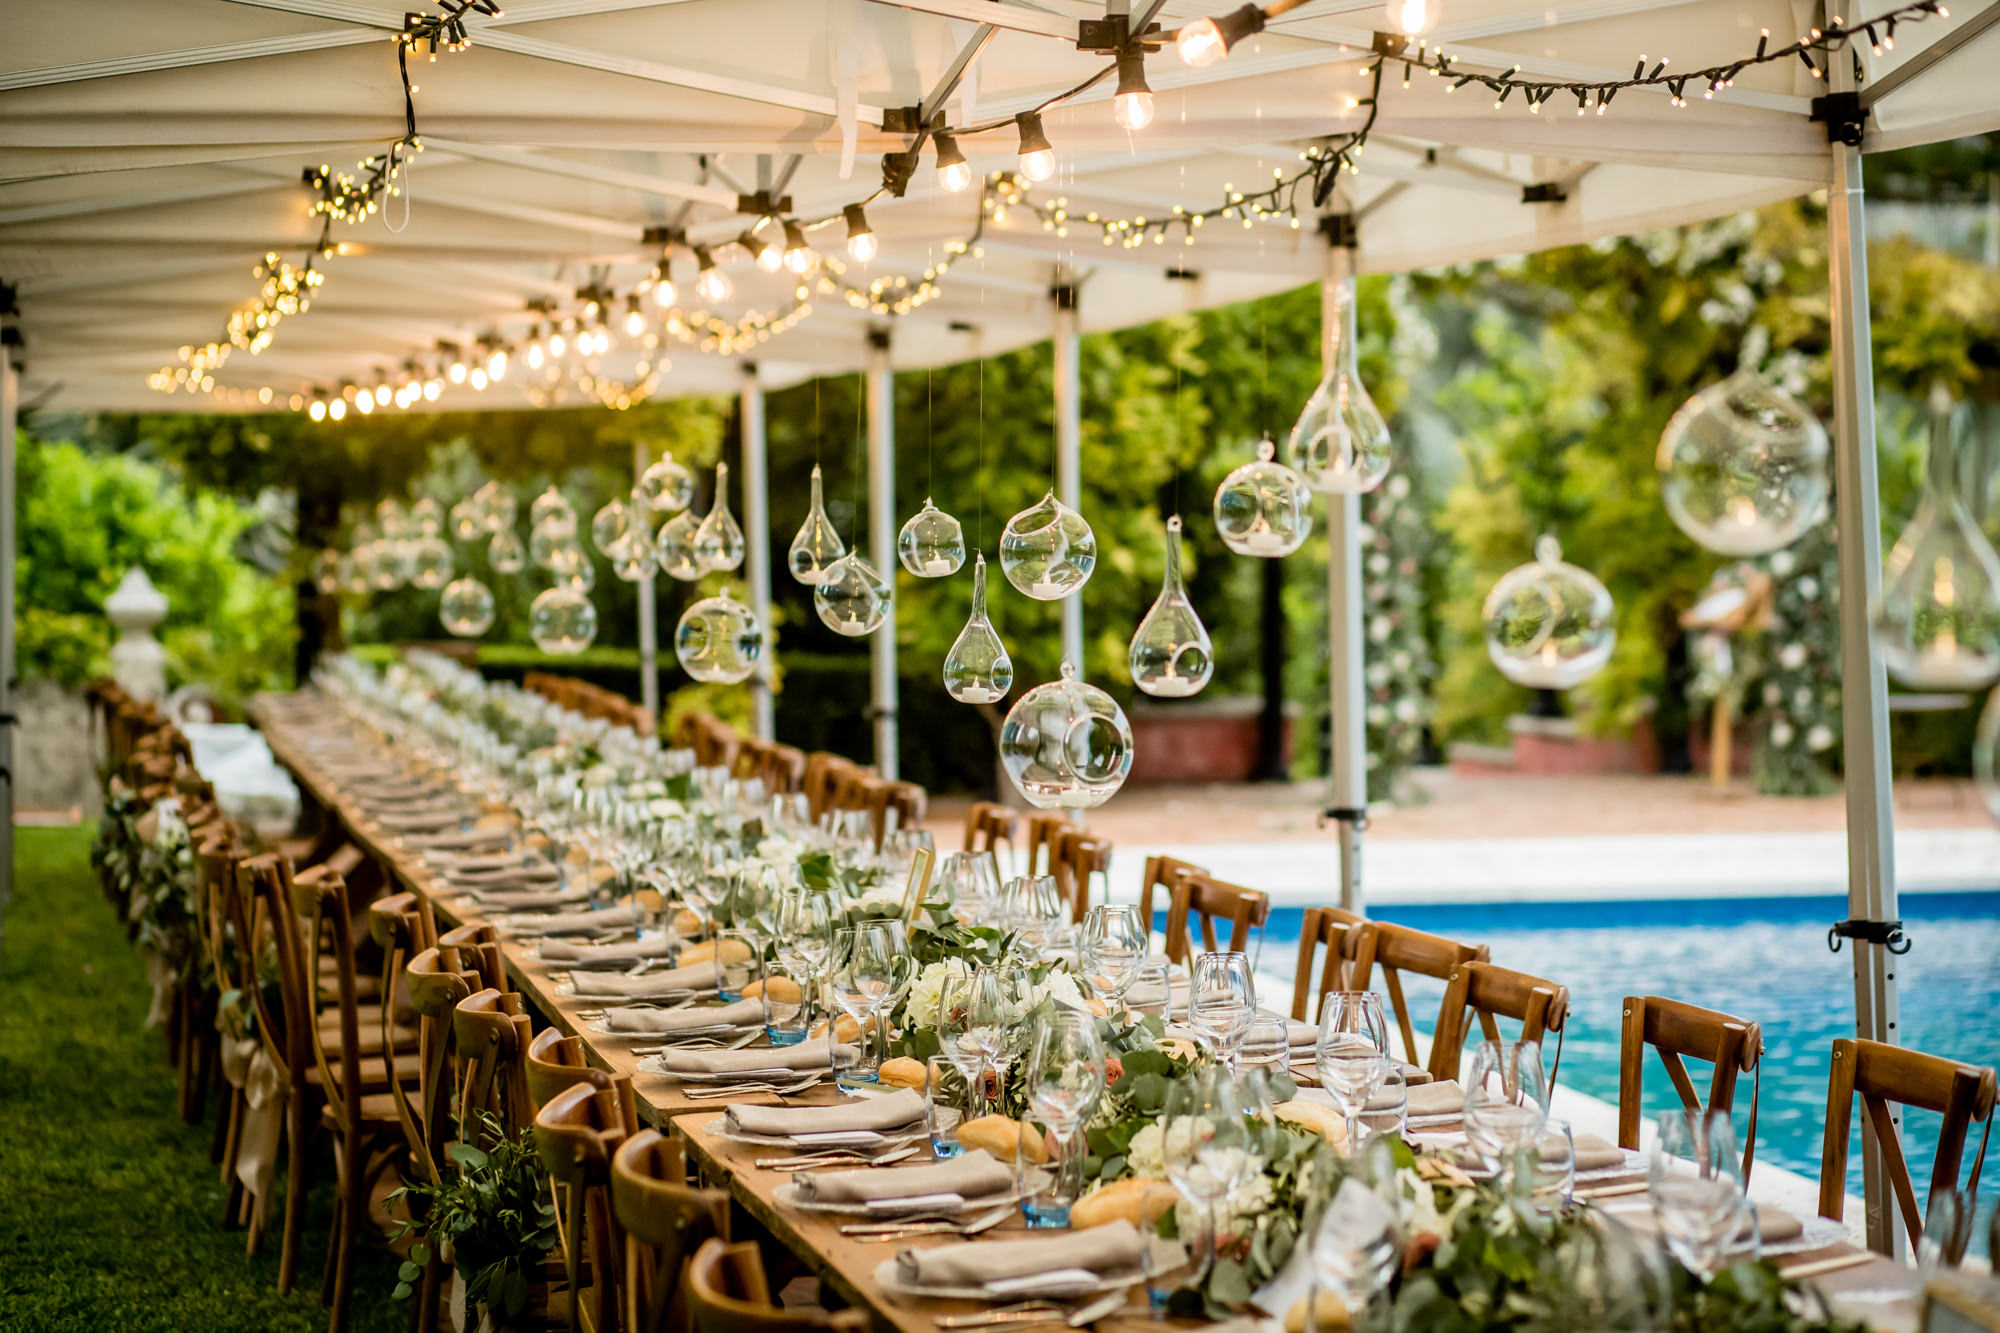 Creative reception table with hanging glass planters photographed by Eppel Photography